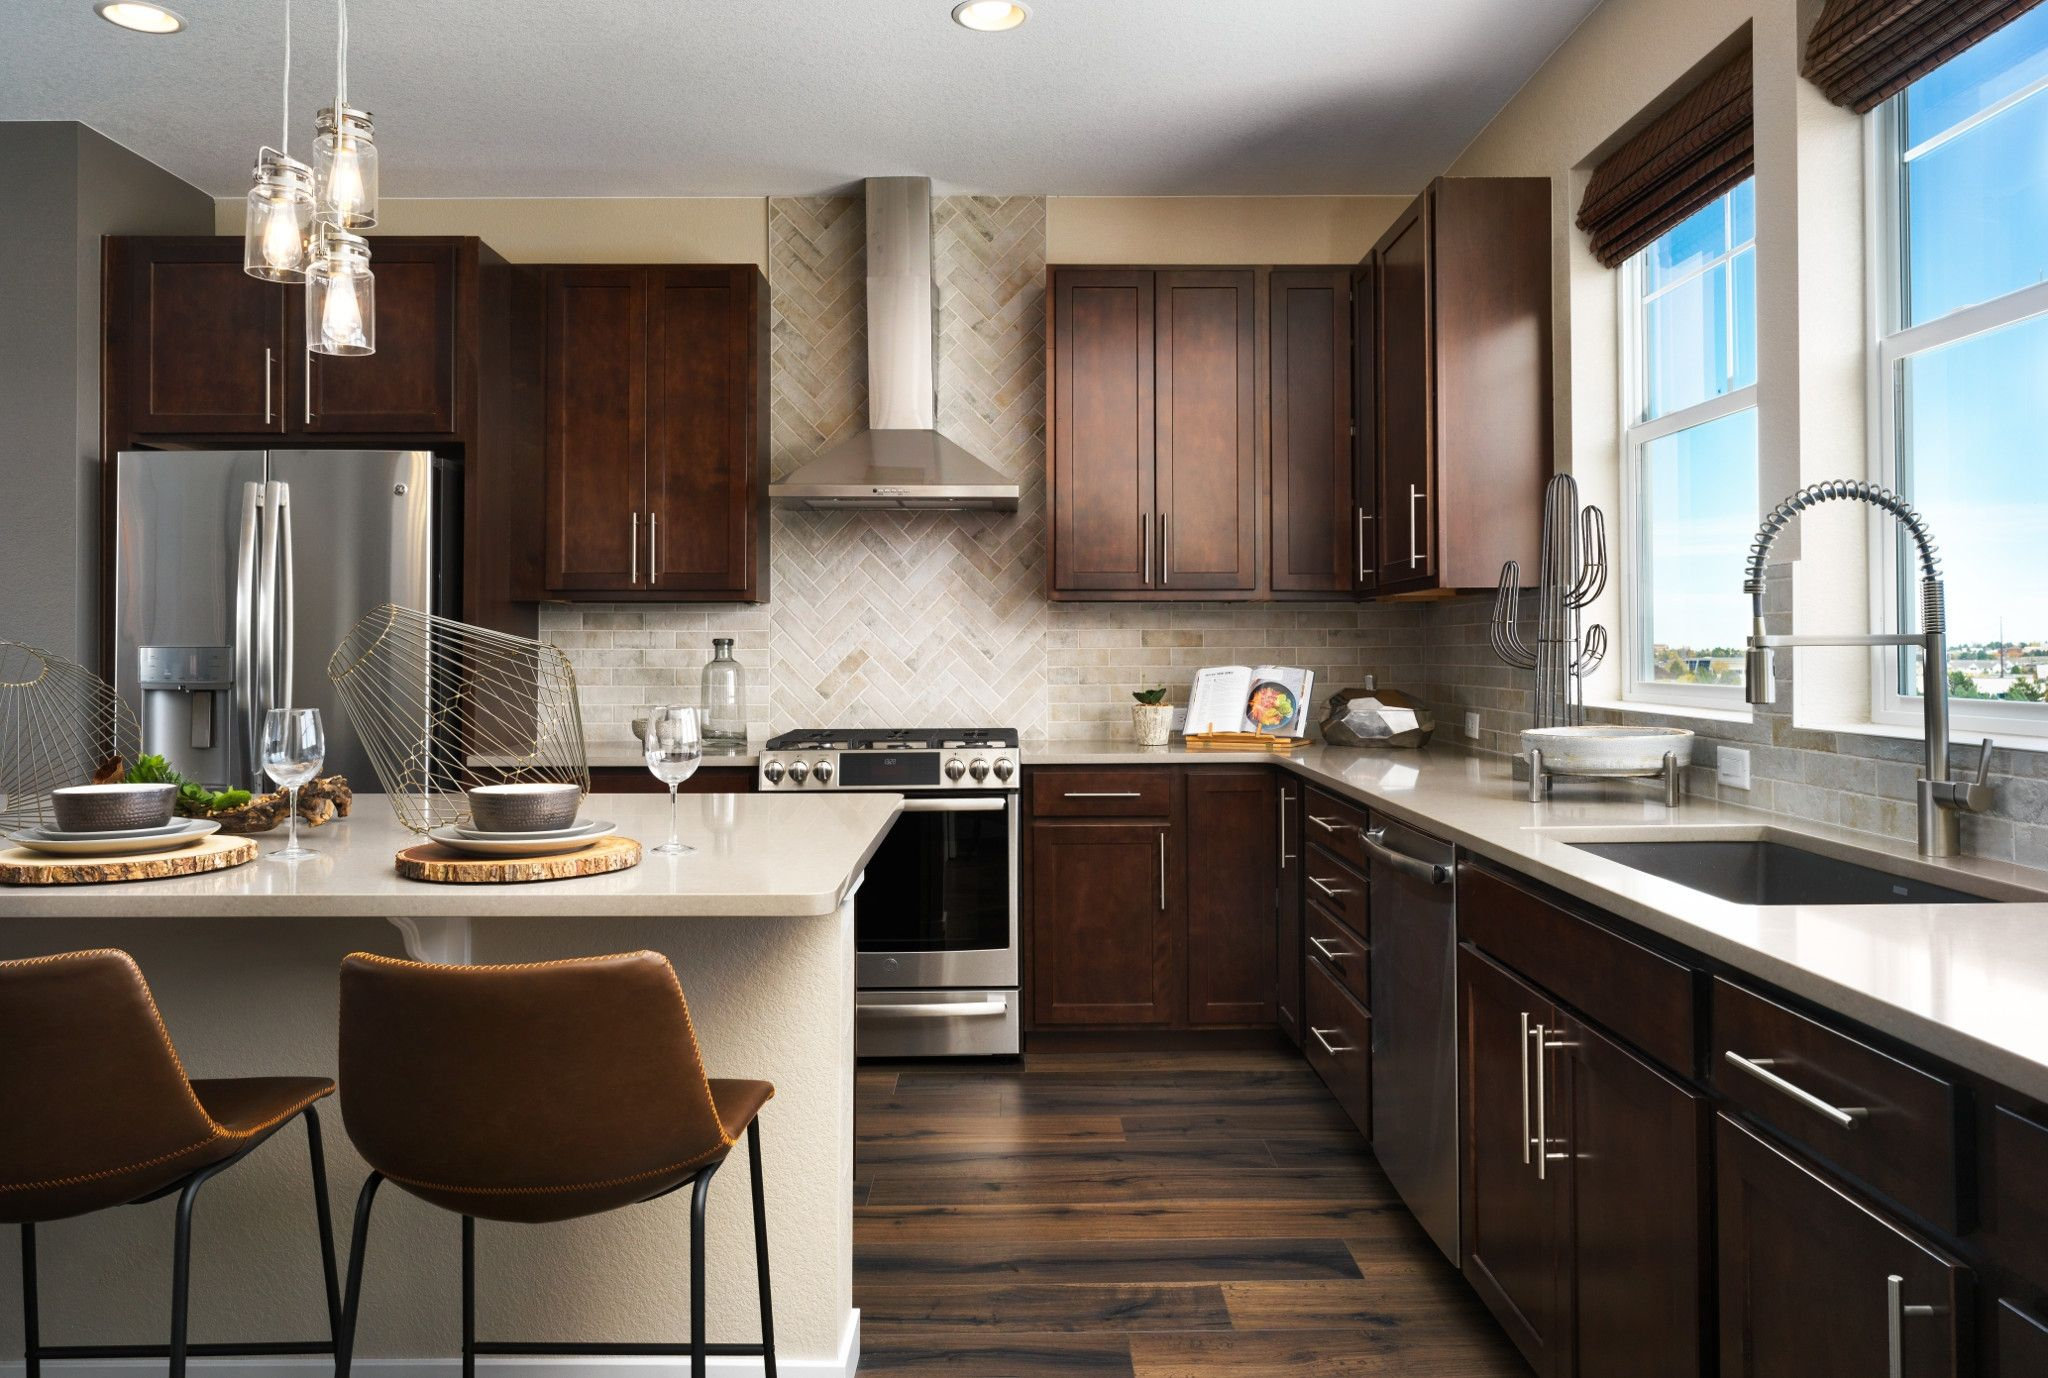 Kitchen featured in the Plan 2201 By Shea Homes in Denver, CO